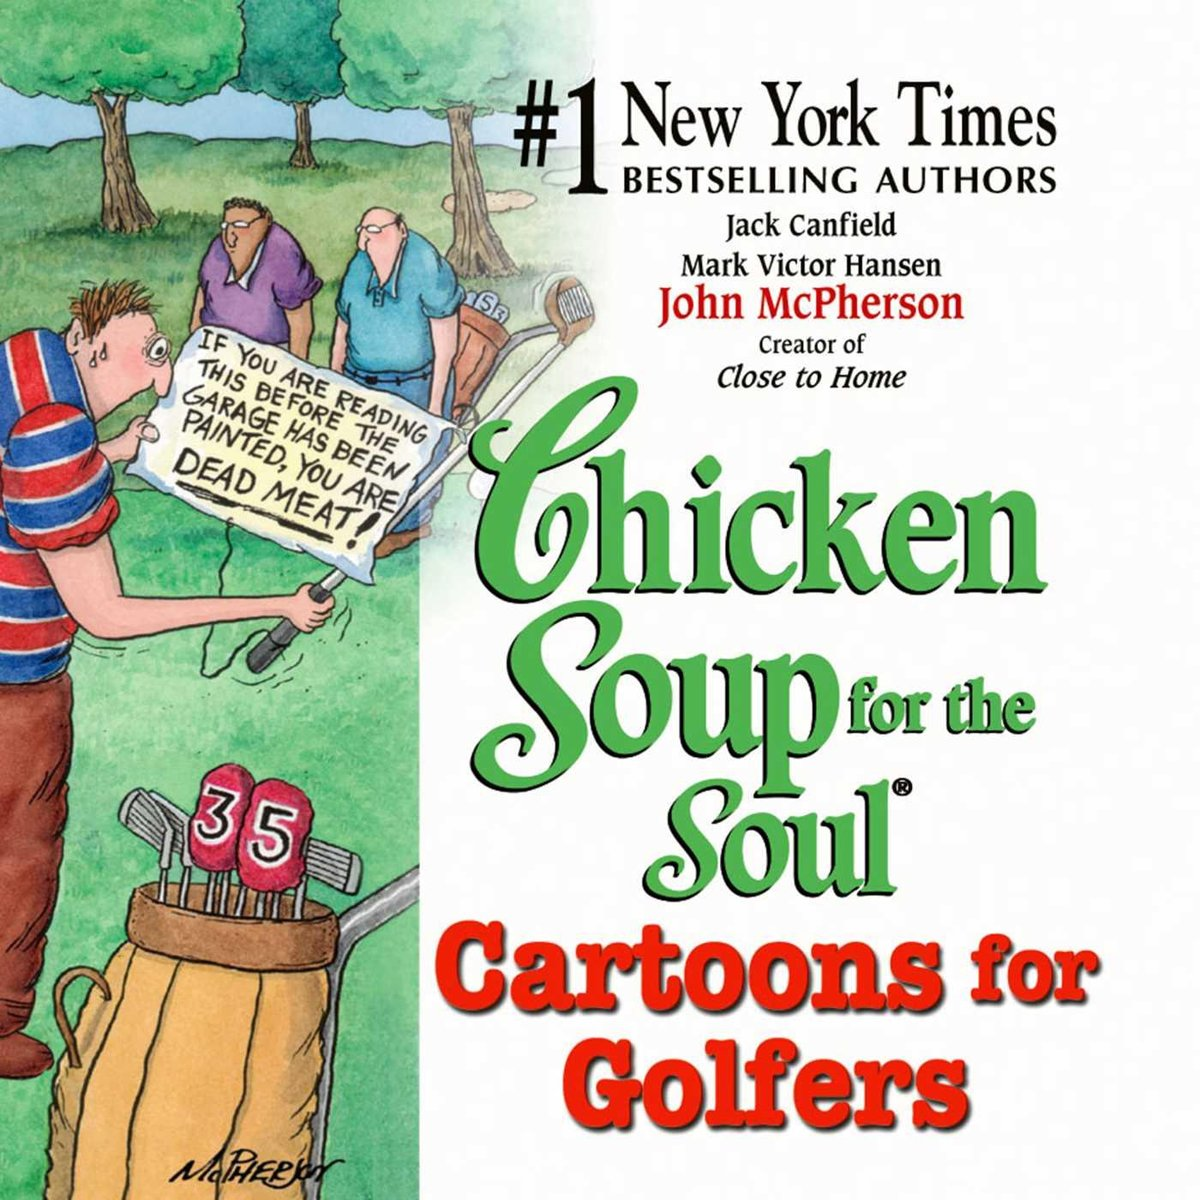 Chicken Soup for the Soul Cartoons for Golfers